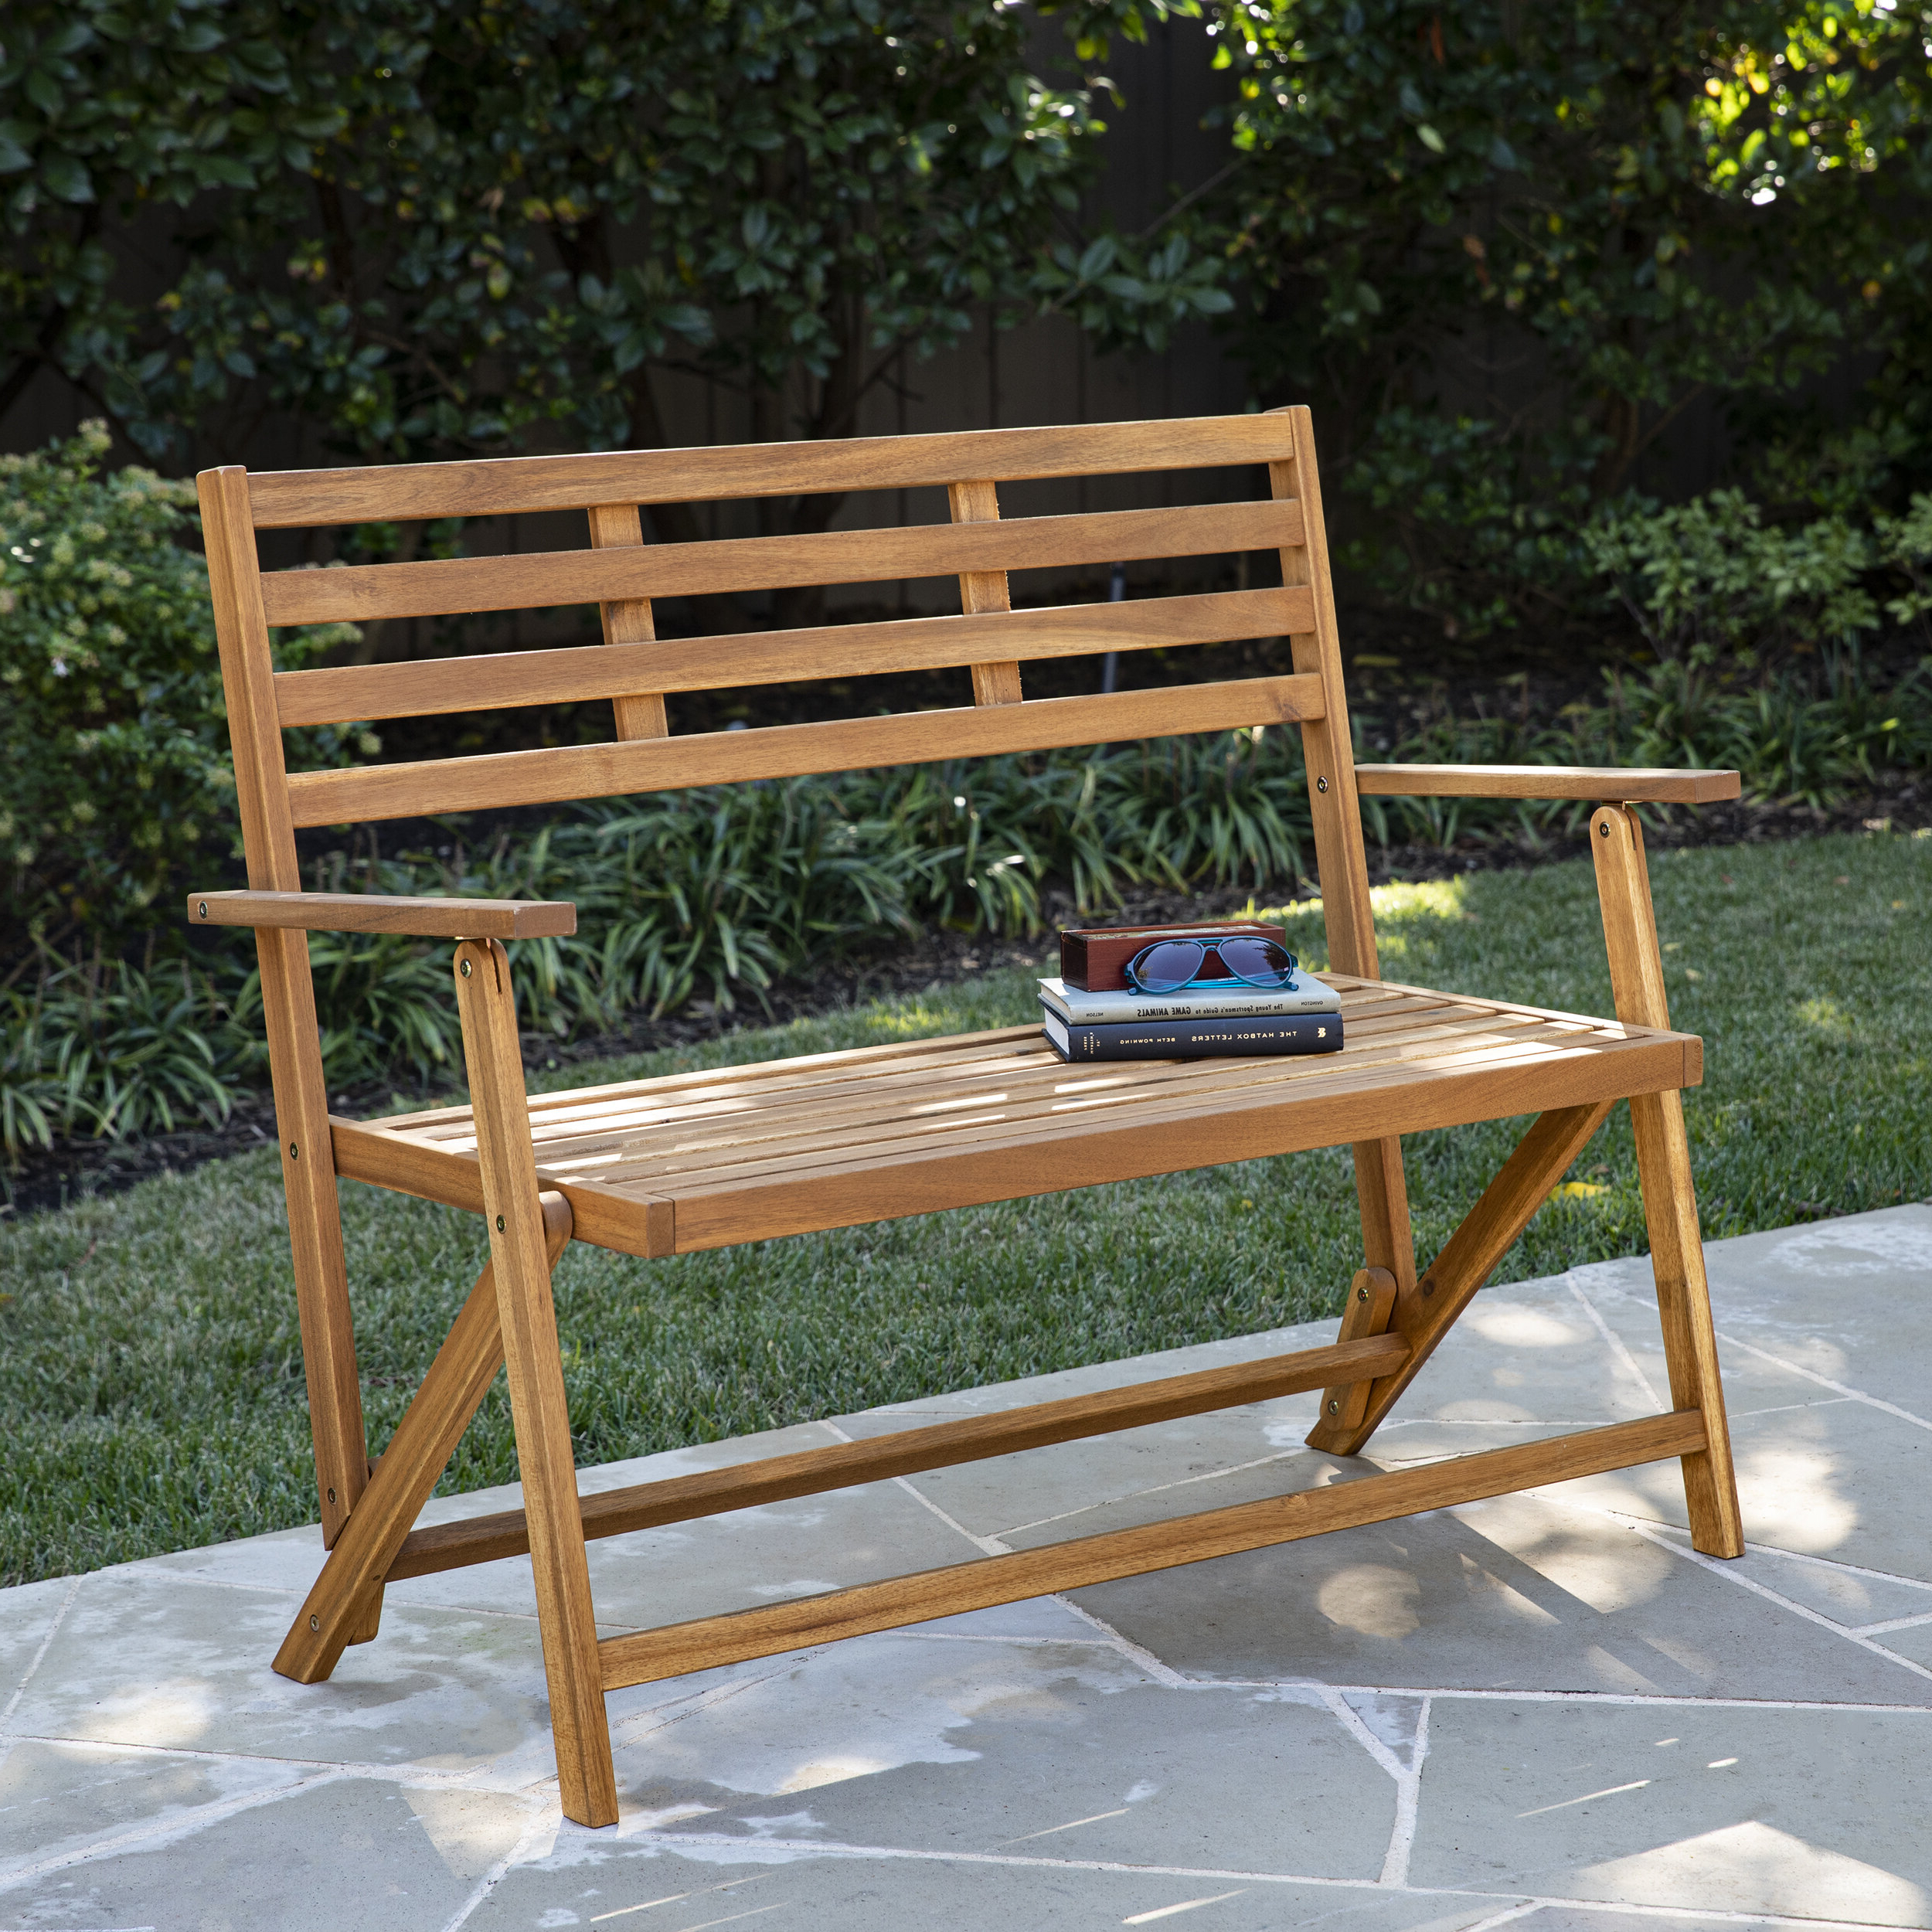 Manchester Wooden Garden Benches In Best And Newest Ballidon Outdoor Wooden Garden Bench (View 21 of 30)